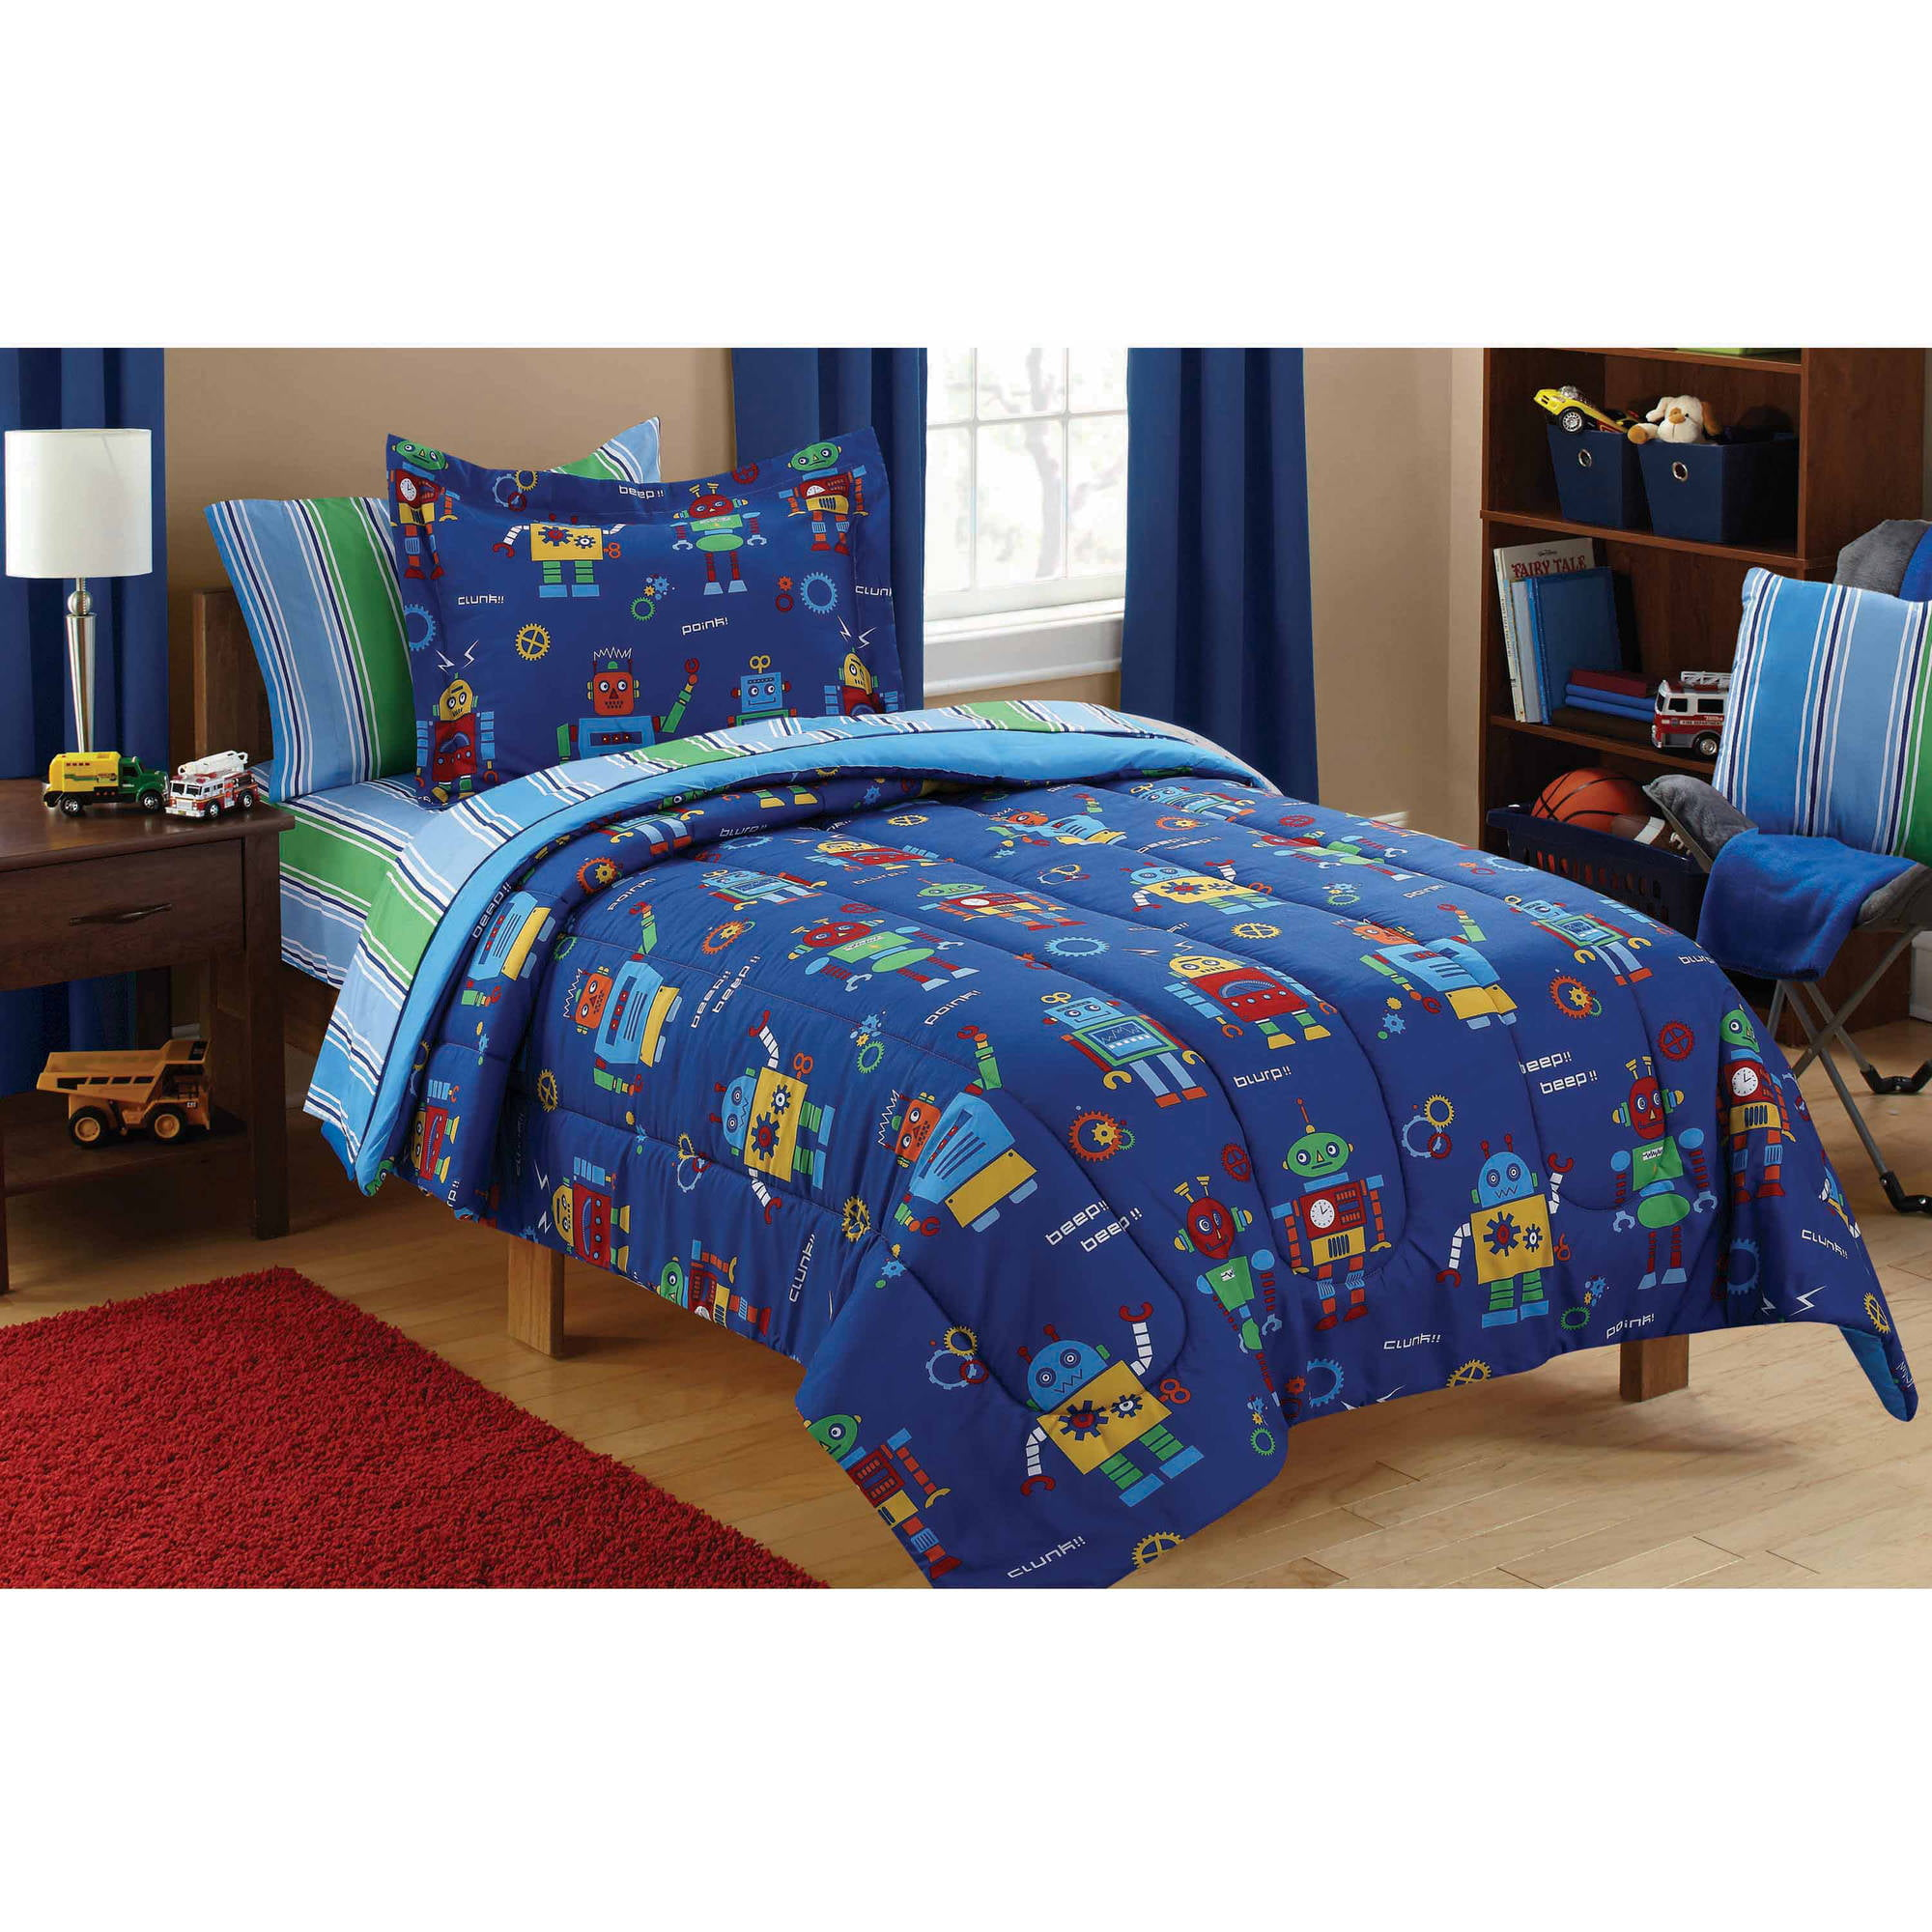 Mainstays Kids Robots Bed In A Bag Bedding Set   Walmart.com